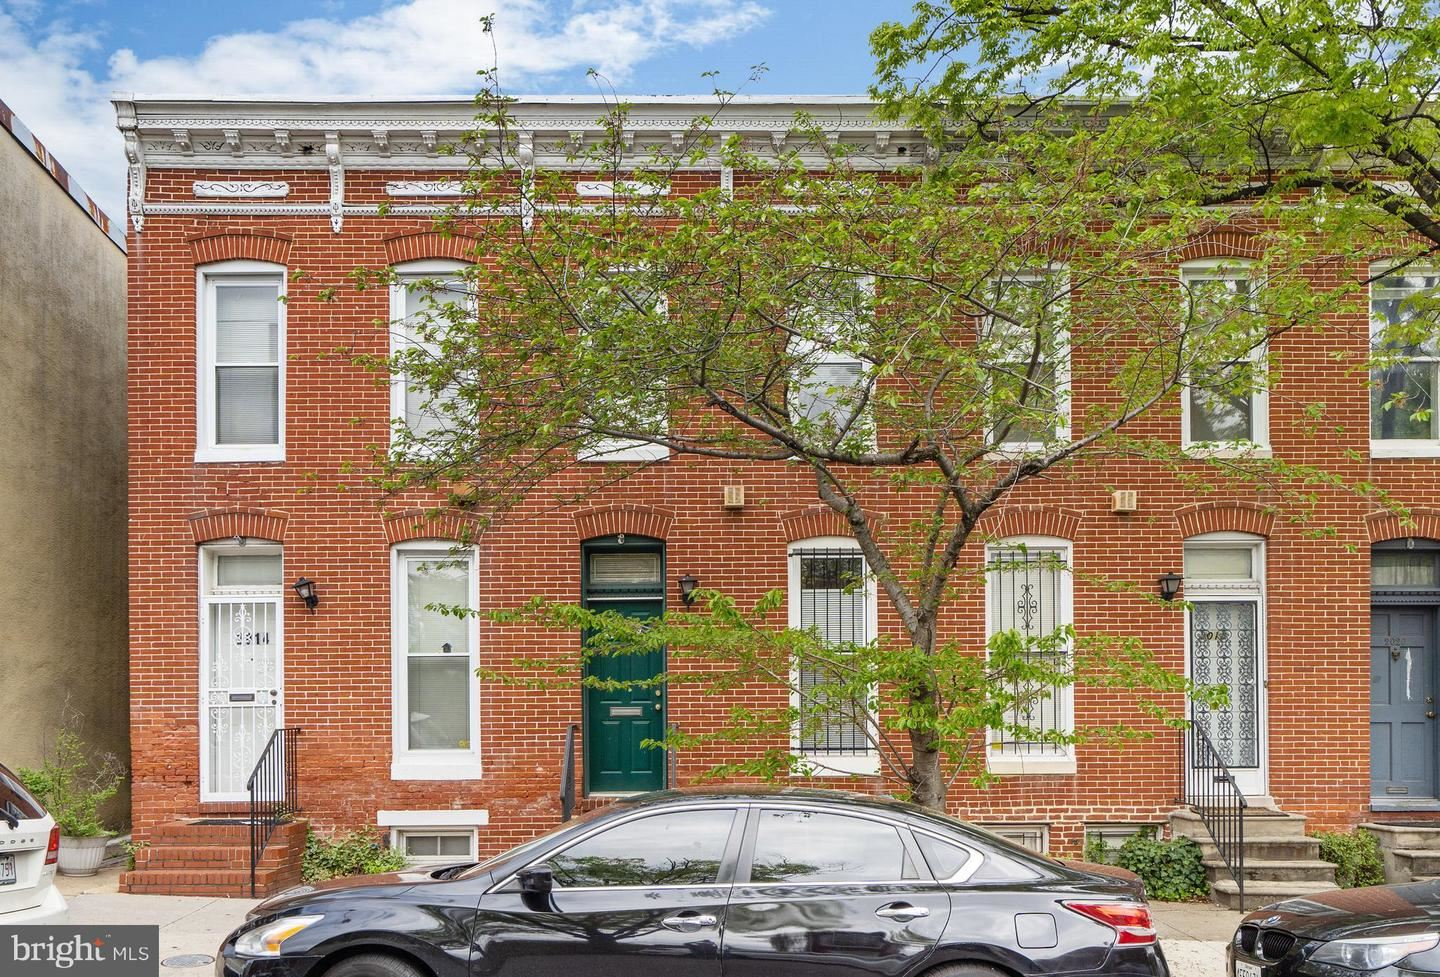 2016 MCELDERRY ST, Baltimore, MD 21205 - MLS#: MDBA549634